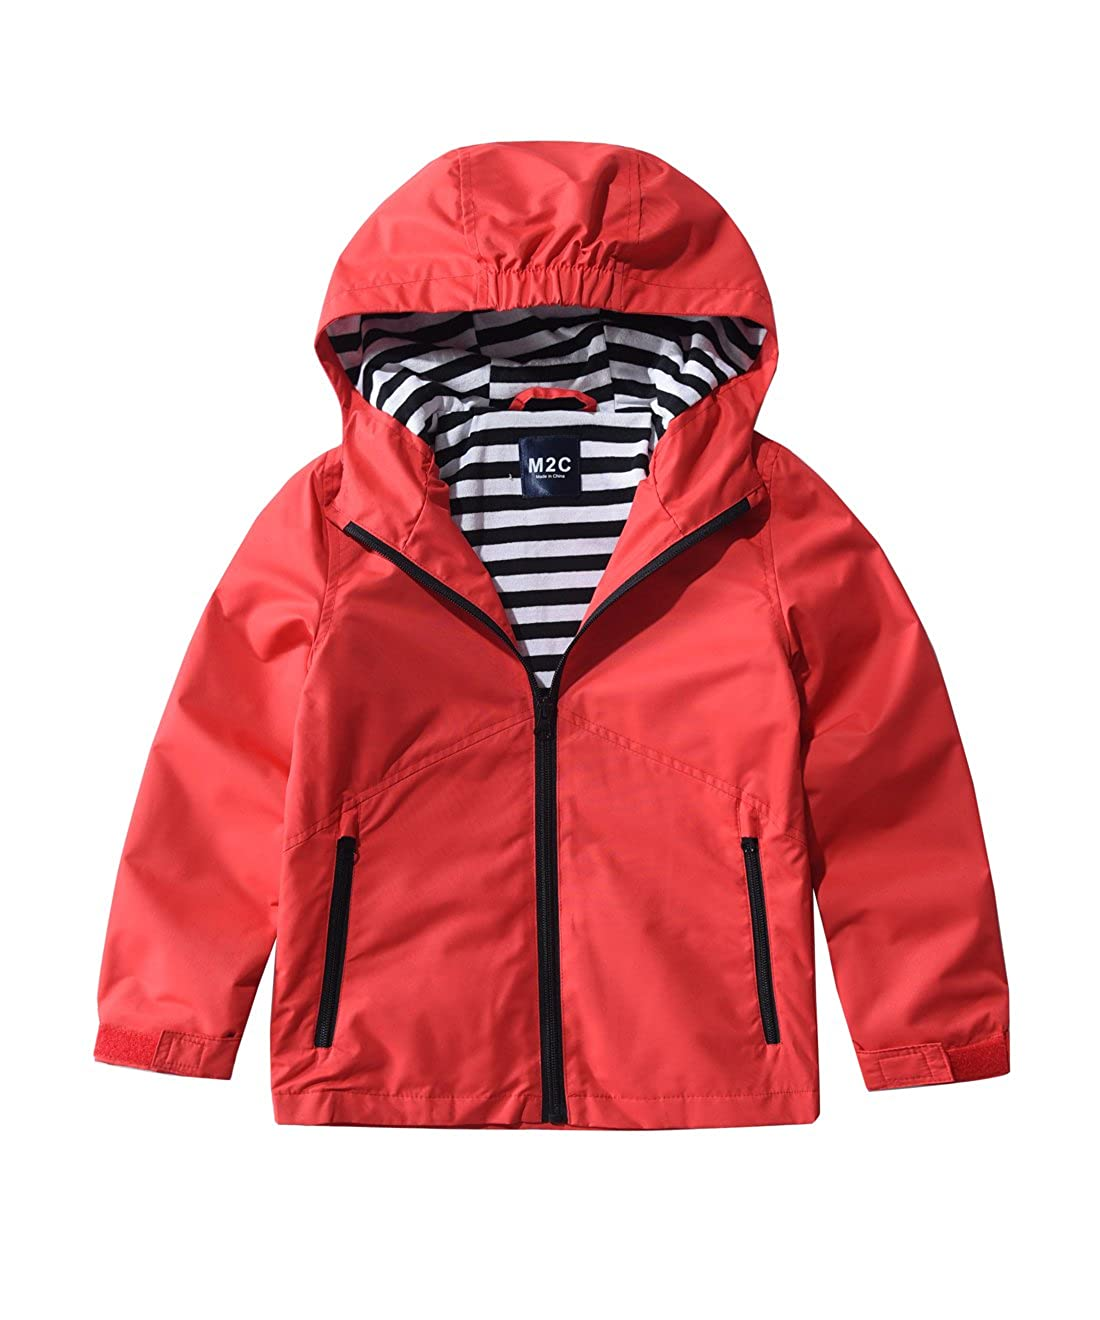 M2C Boys & Girls Hooded Windproof Jacket Light Windbreaker